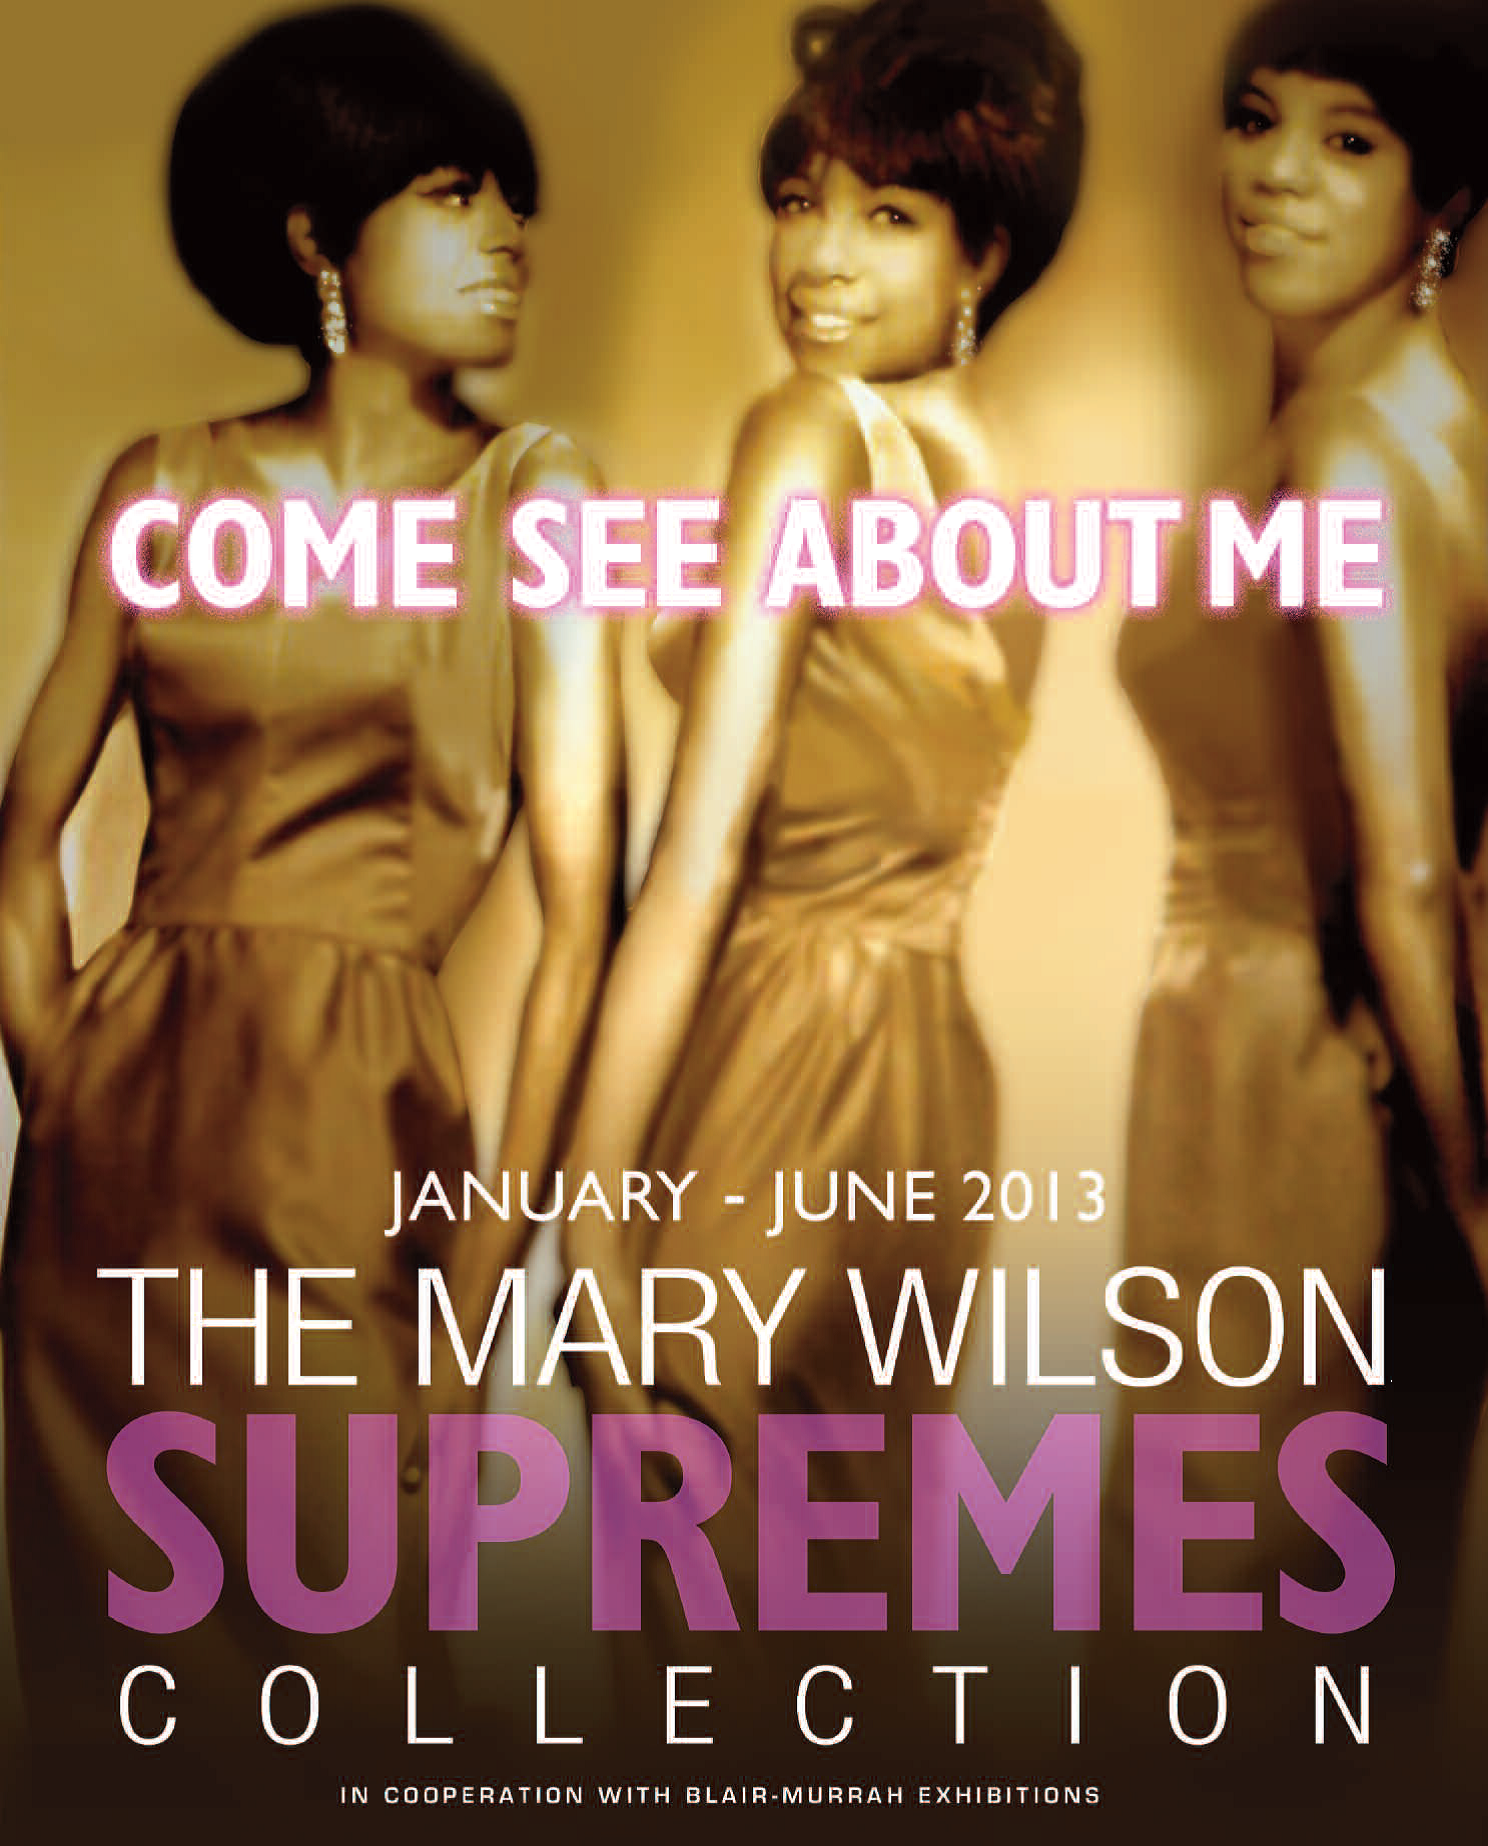 AAMP Exhibit about The Supremes